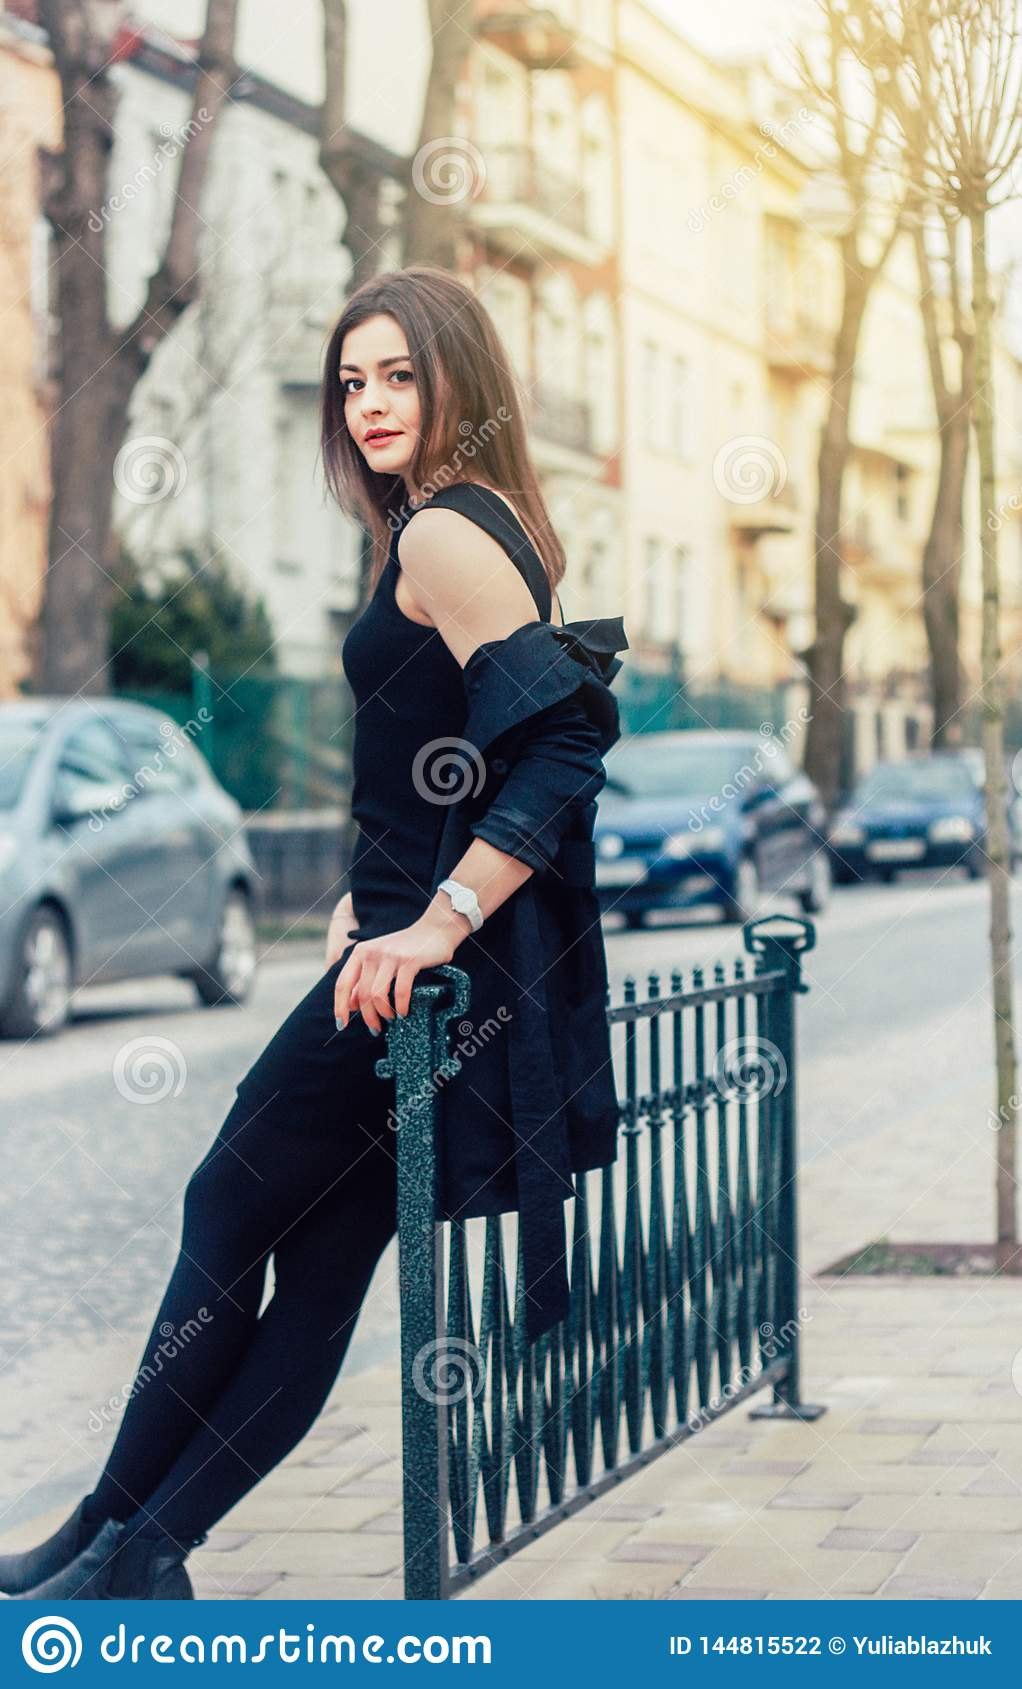 Young pretty woman at the street. Classic clothes style, natural look